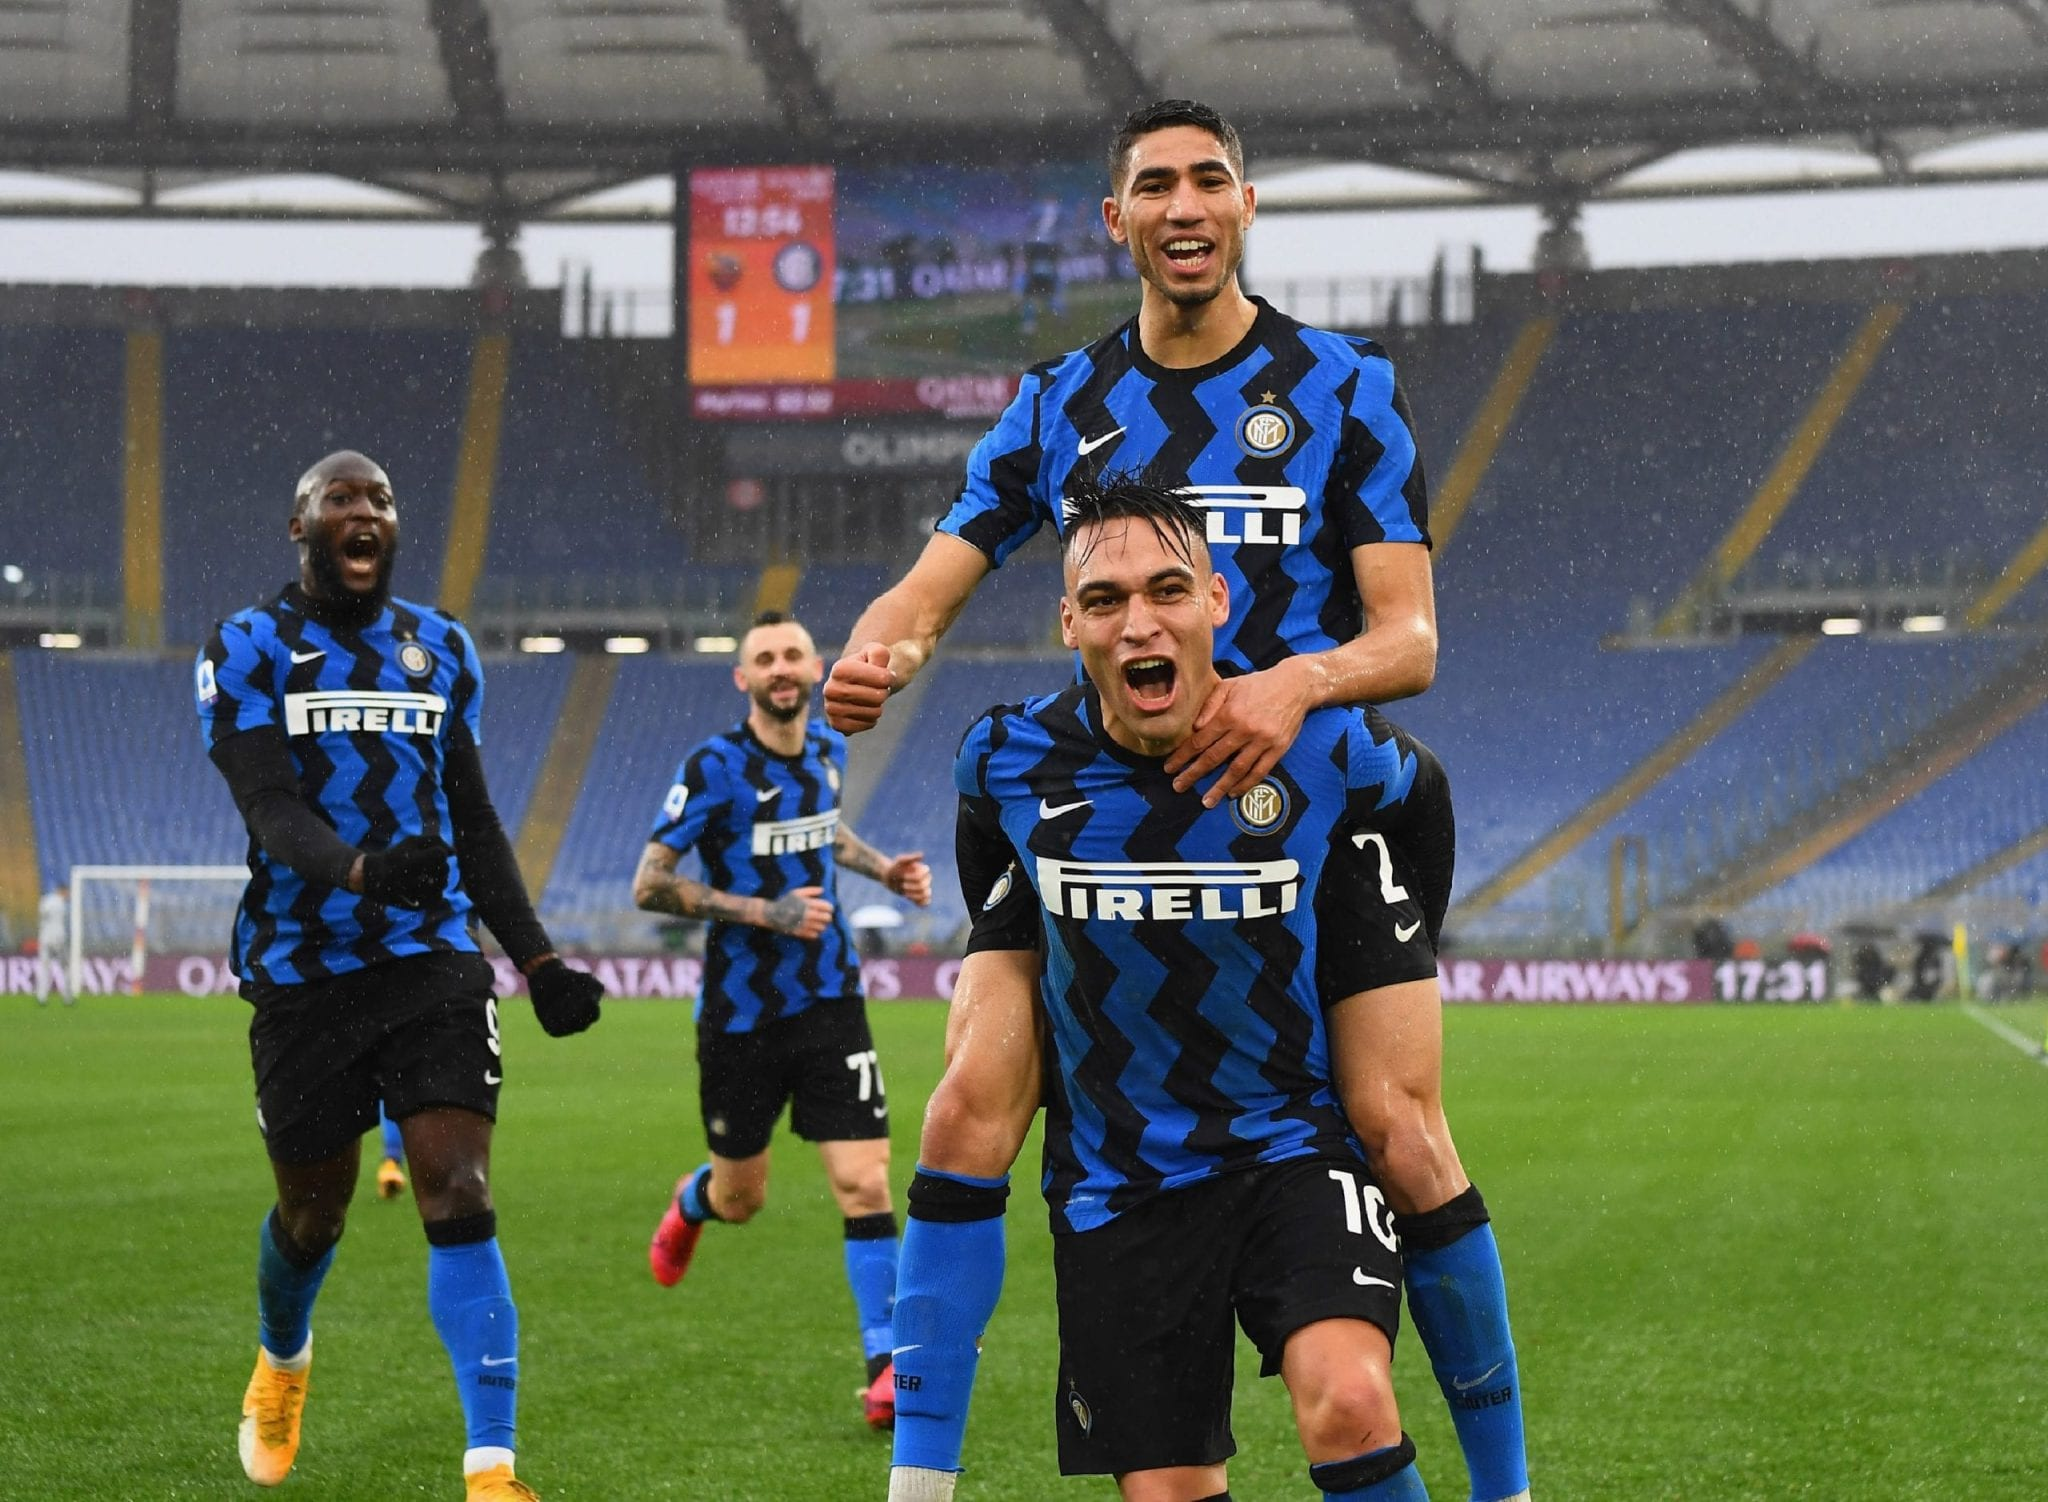 FC Inter teammates celebrating during a match